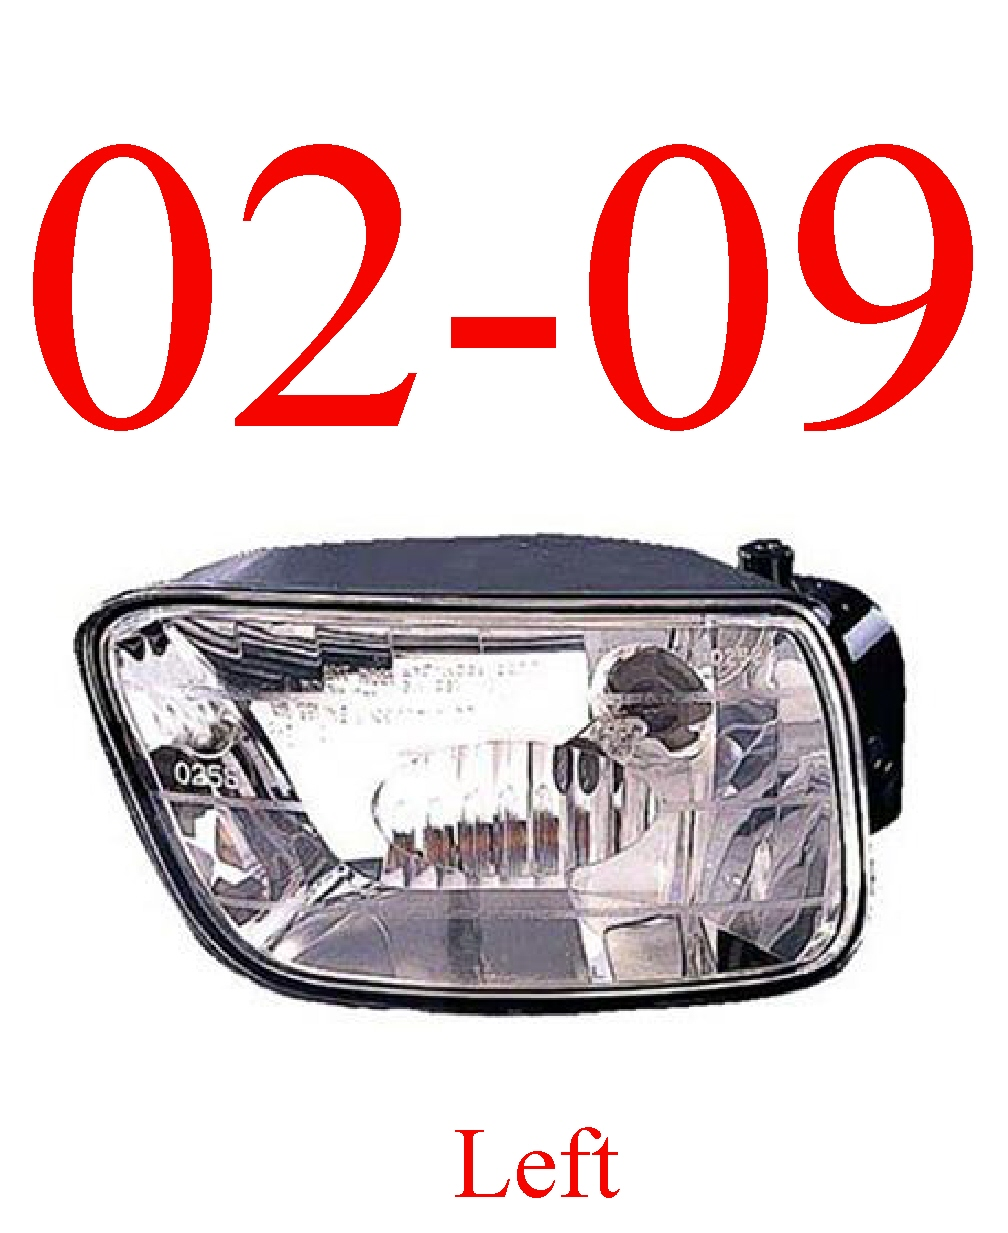 02-09 Trailblazer Left Fog Light Assembly